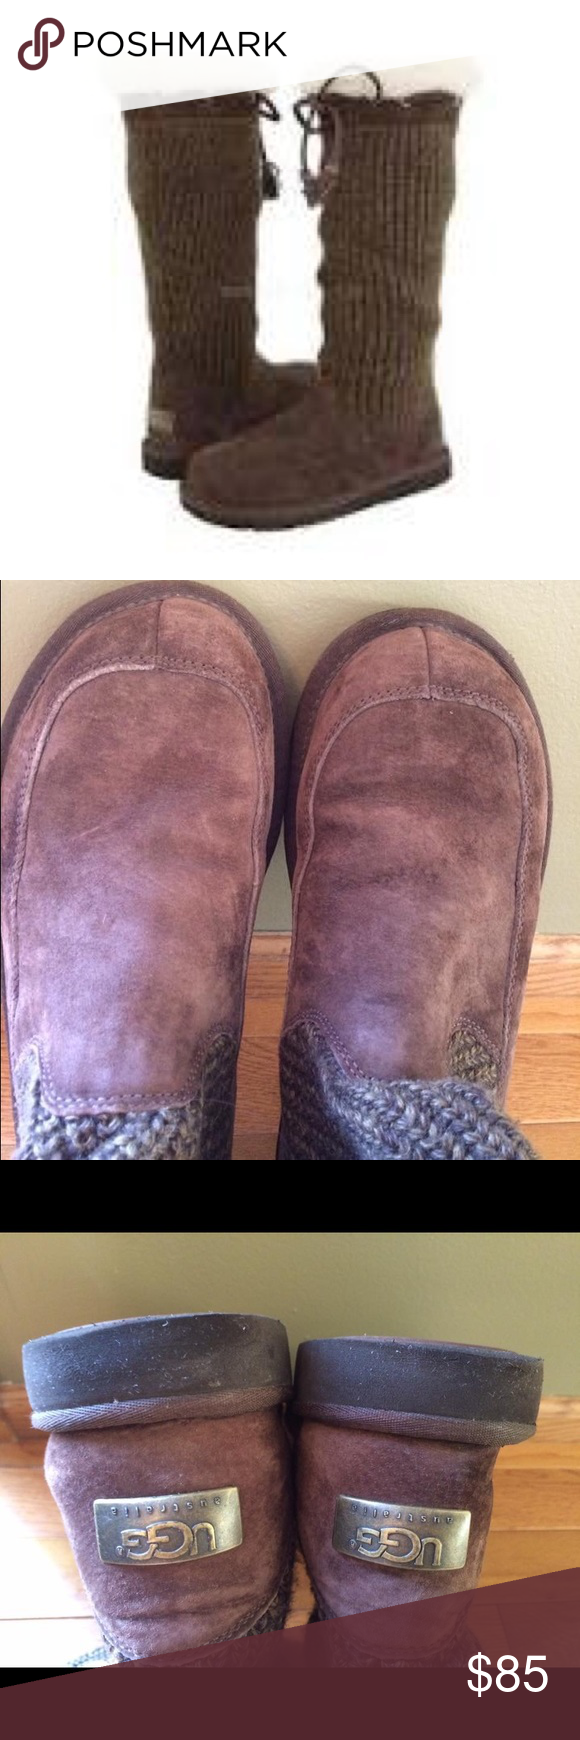 UGG Suburb Crochet Tall Boots Choc Brown - size 10 This pair of UGG Suburb Crochet Tall Boots is in wonderful condition only having been worn a handful of times. Style is #5733. Size is 10 women's which actually fits a size 9. Chocolate brown in color. UGG Shoes Winter & Rain Boots